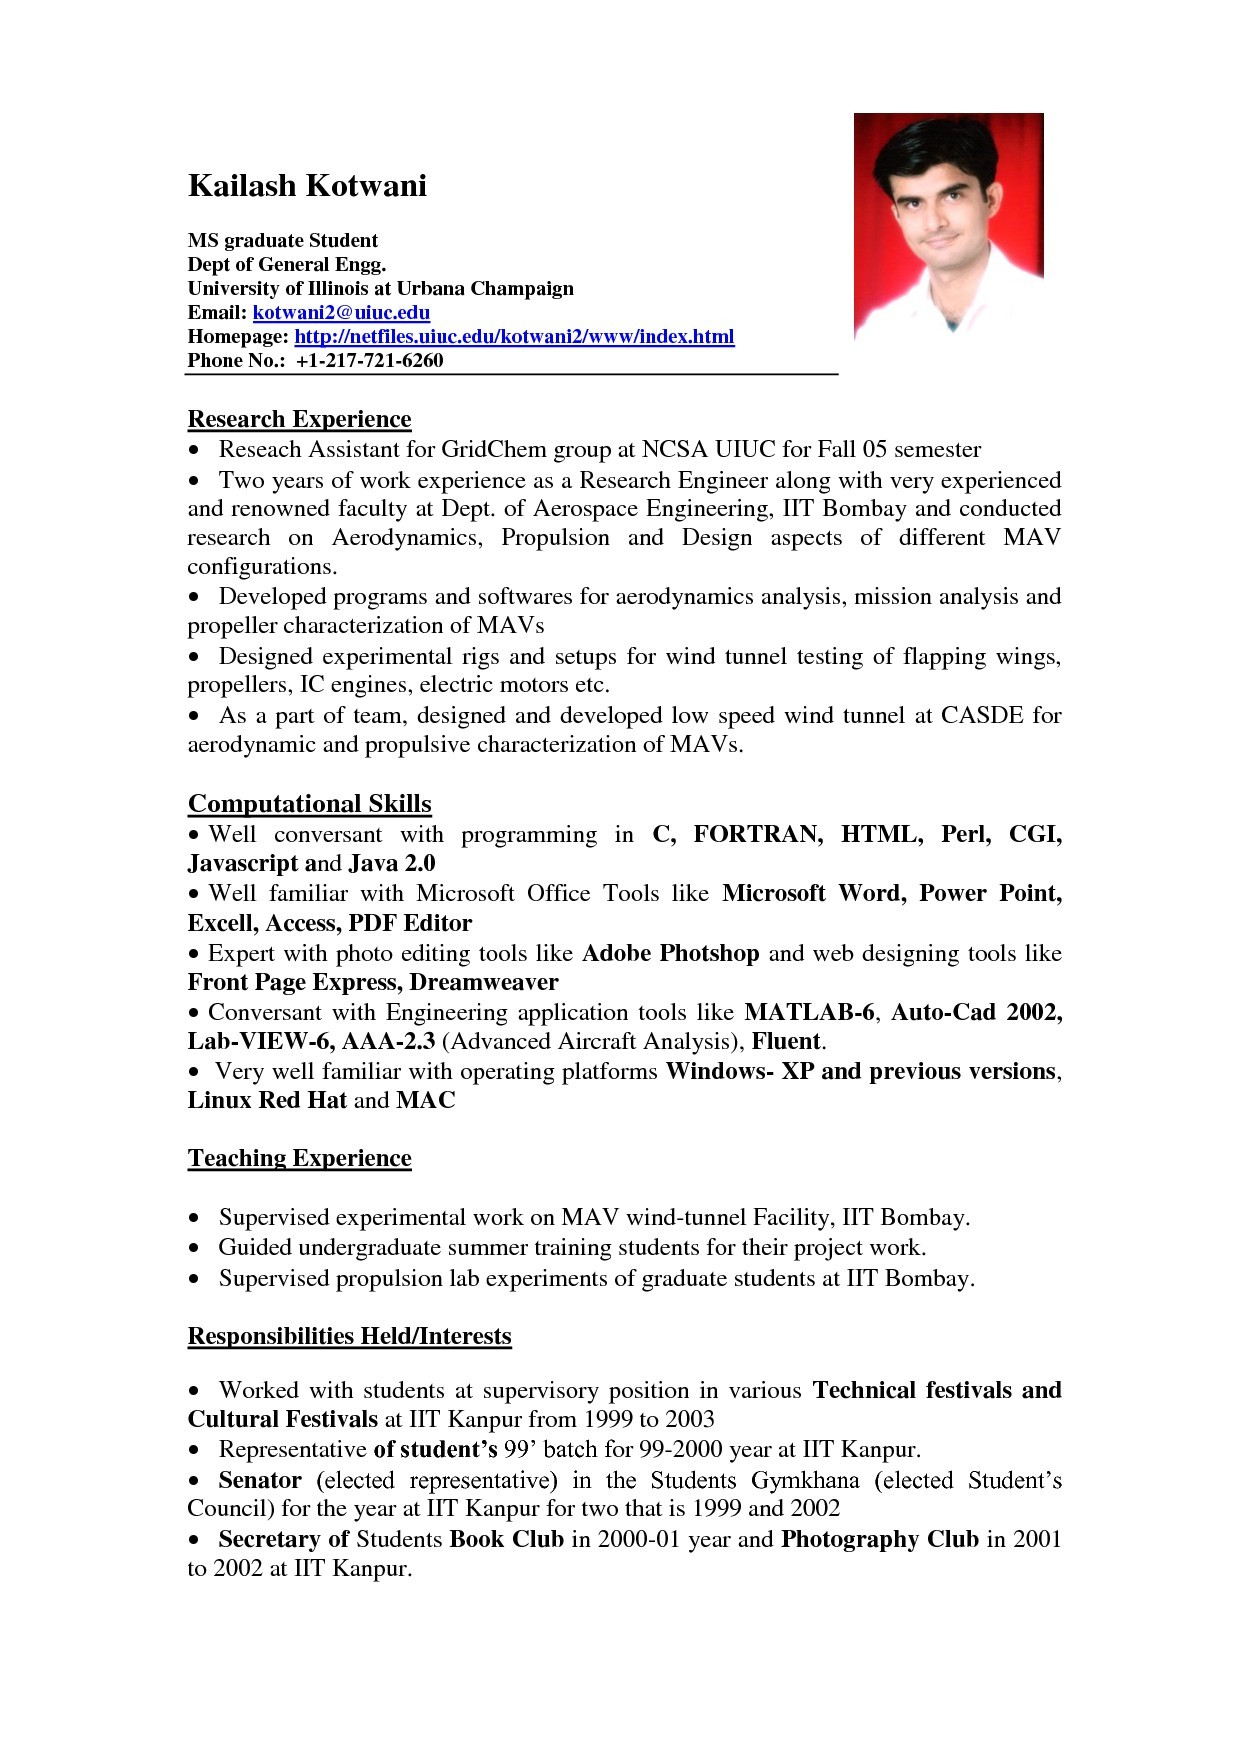 Uiuc Resume Template - Resume Examples for Teens Fresh Luxury Resume Examples Pdf Best